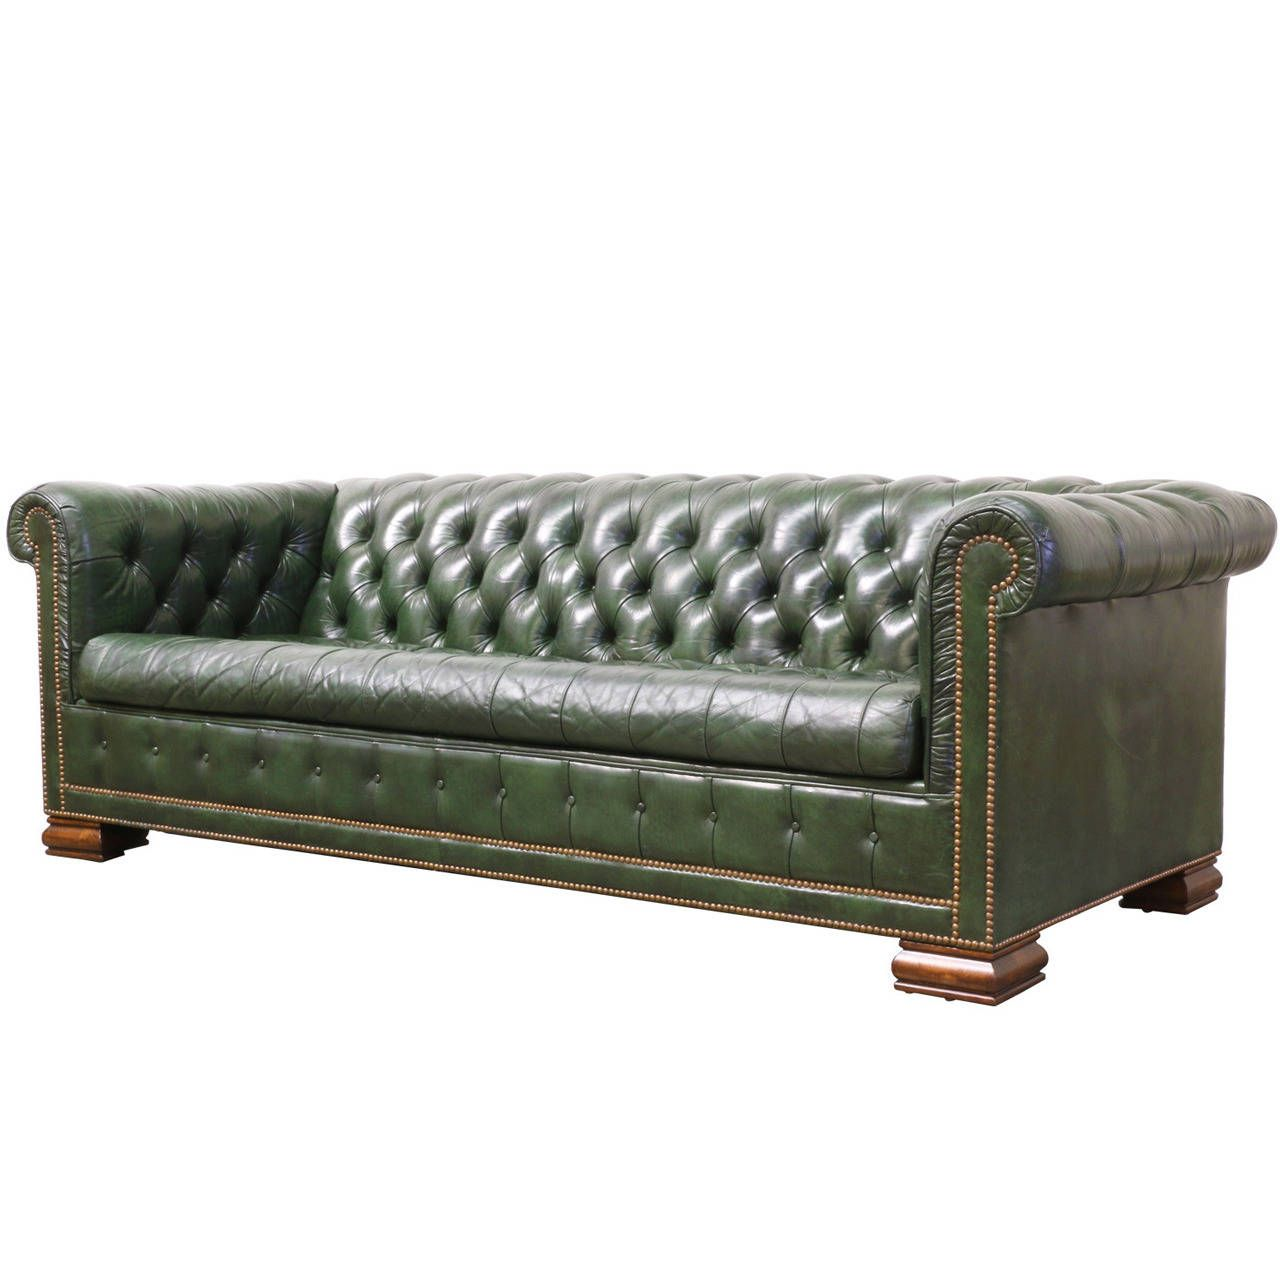 Vintage Green Leather Chesterfield Sofa Bed 1stdibs Com